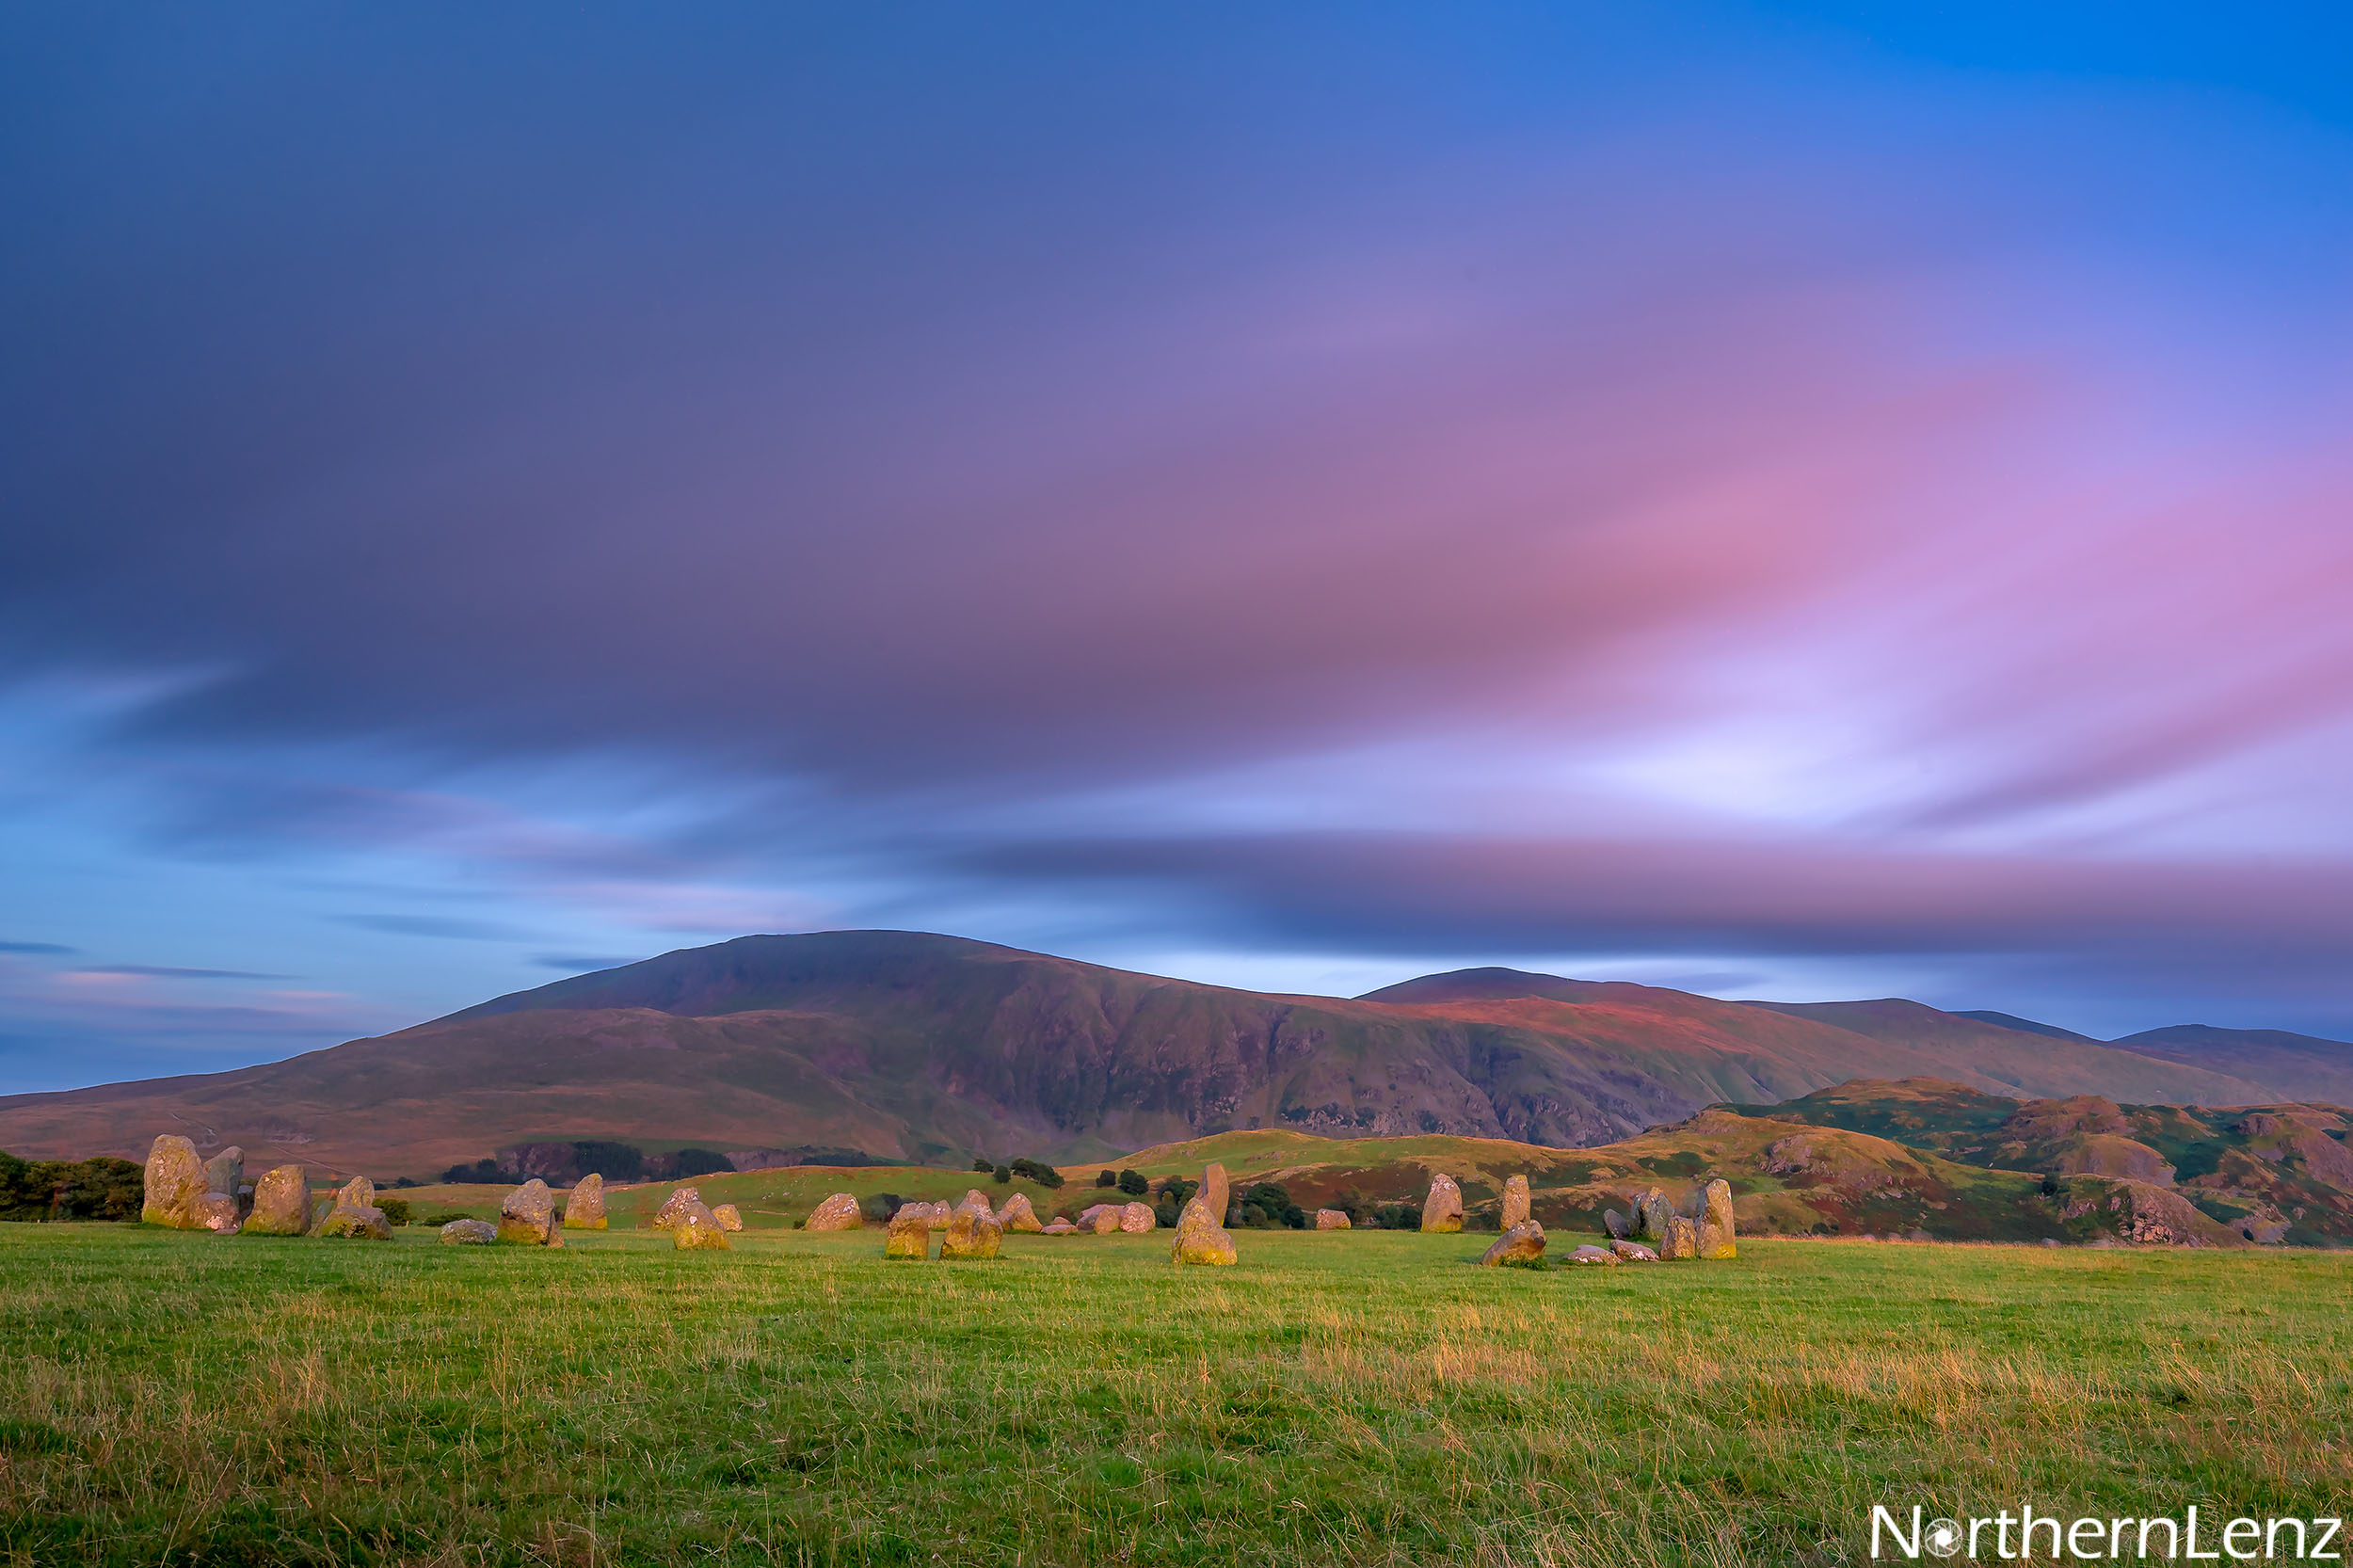 Castlerigg Stone Circle, a neolithic monument just outside Keswick bathed in beautiful light at sunset  Image Ref: LD12